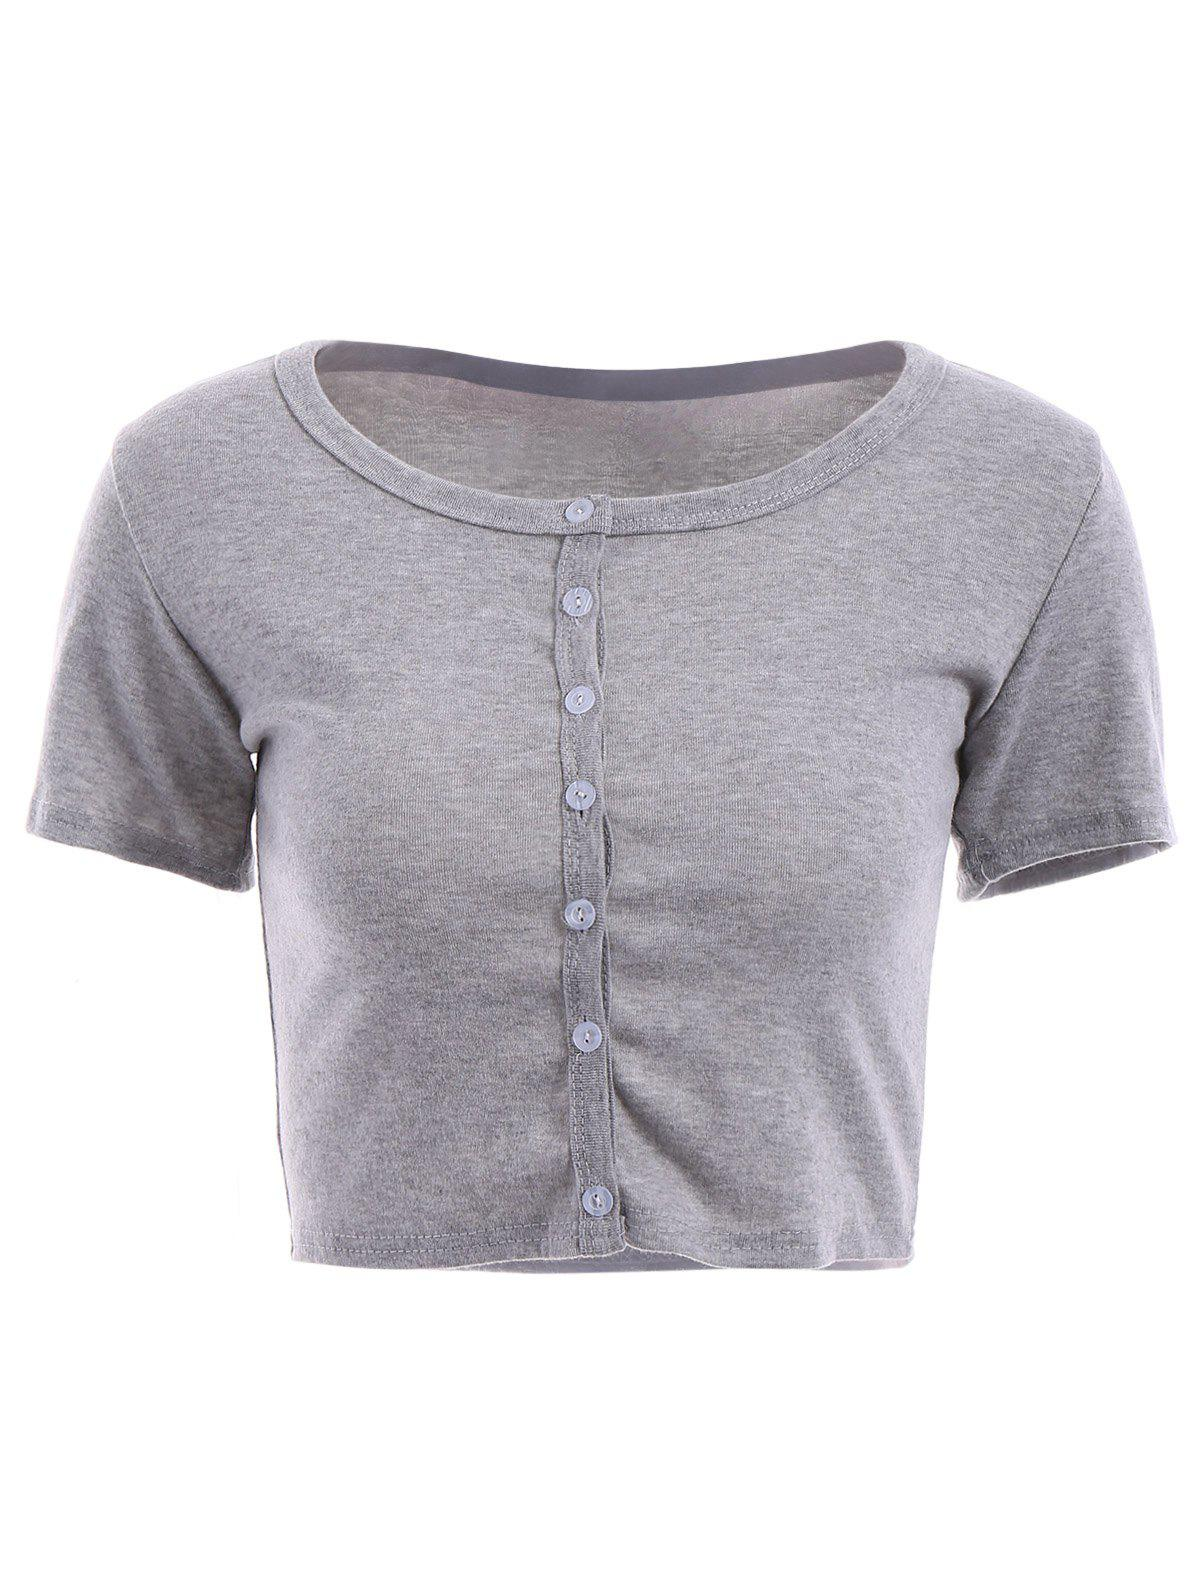 Chic Scoop Neck Short Sleeves Button Embellished Women's Crop Top - GRAY S